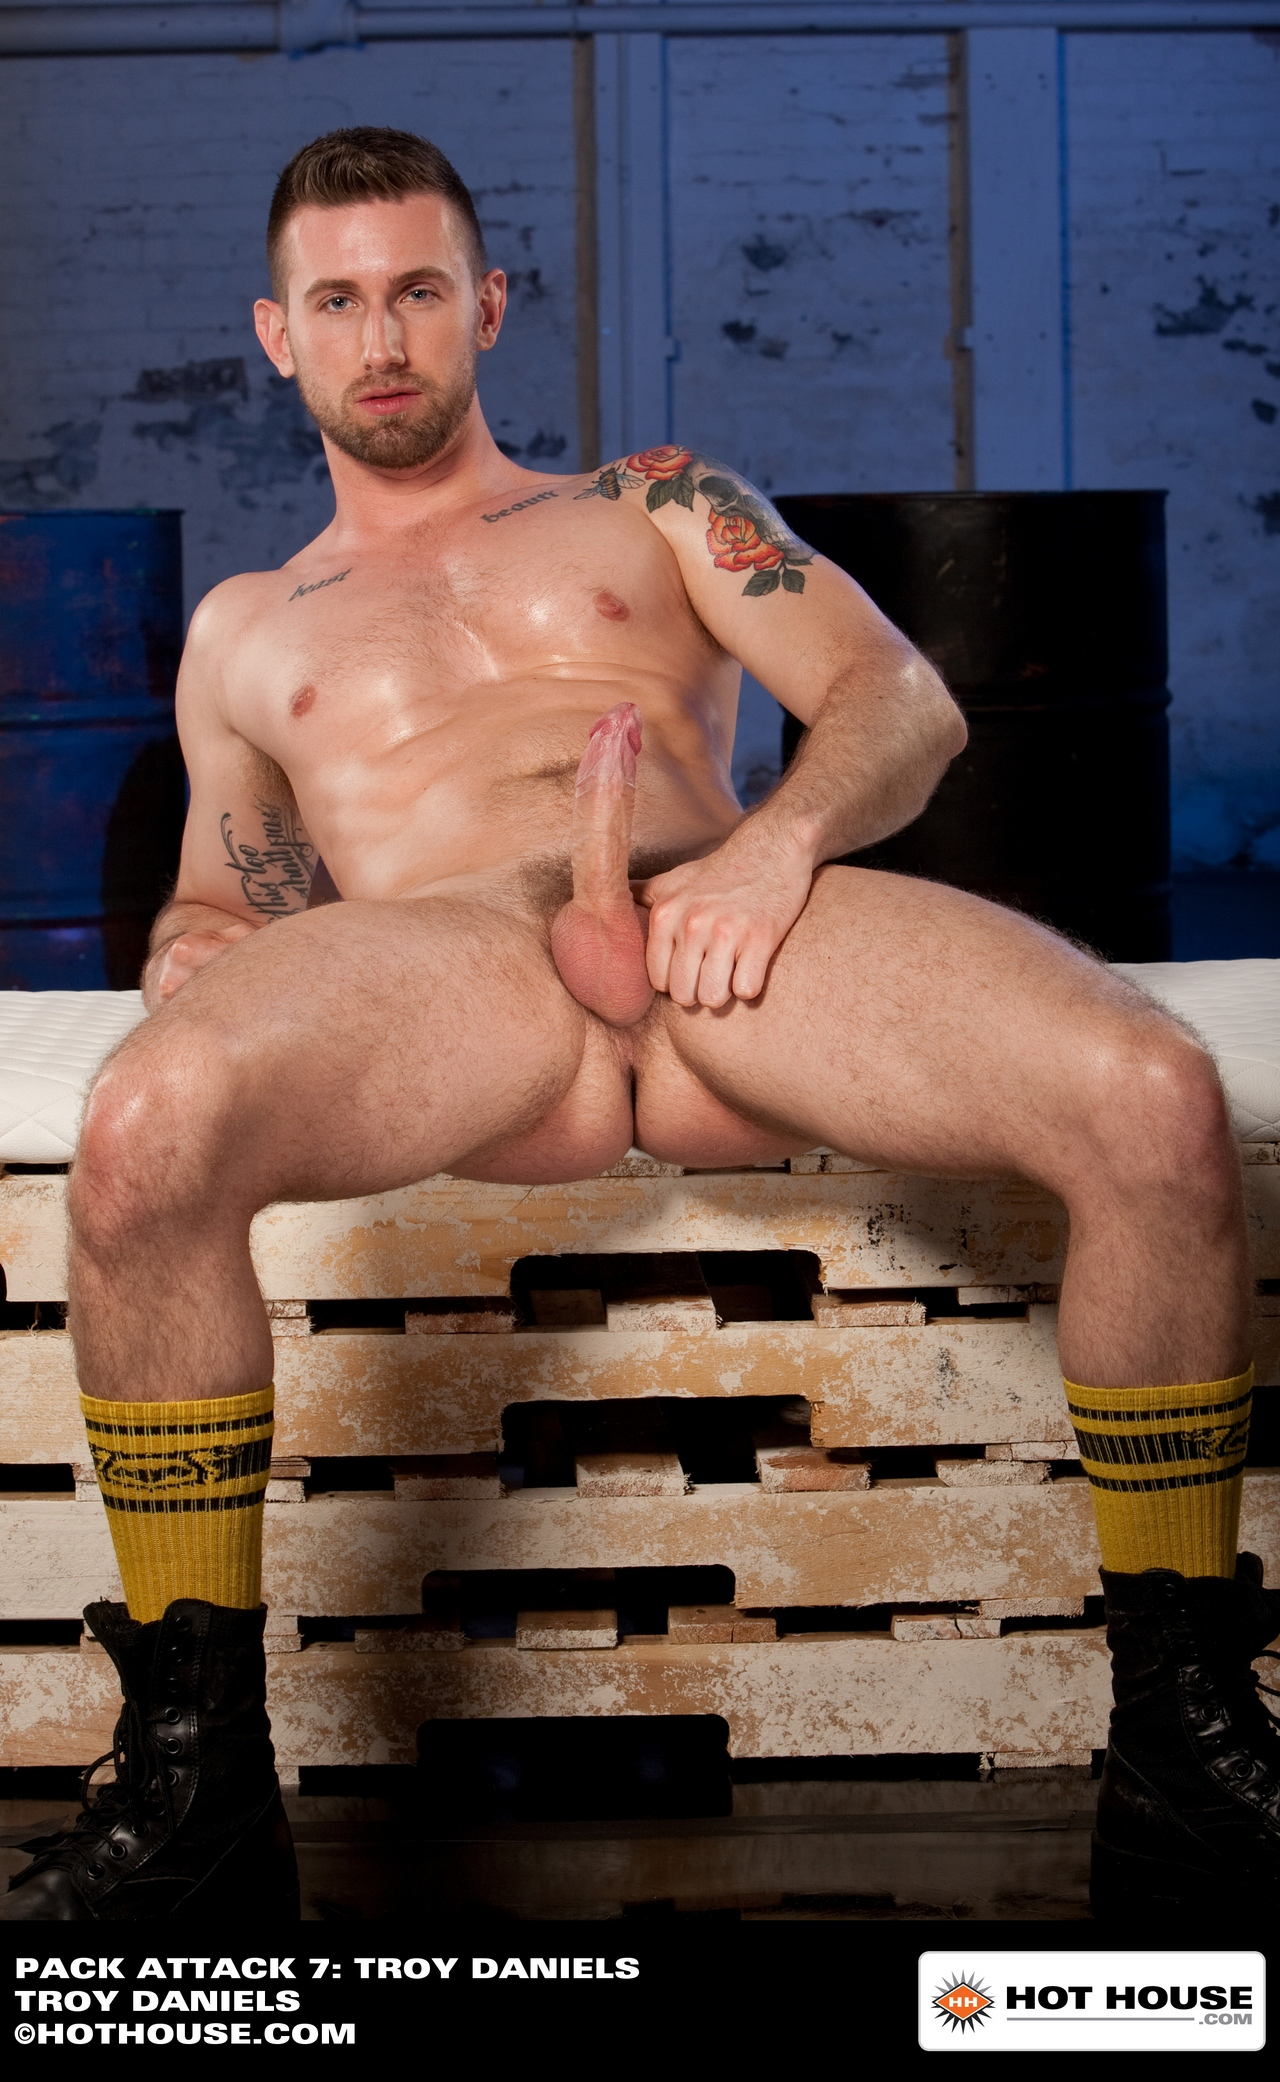 Hot House – Pack Attack 7: Troy Danniels (Scene 1)